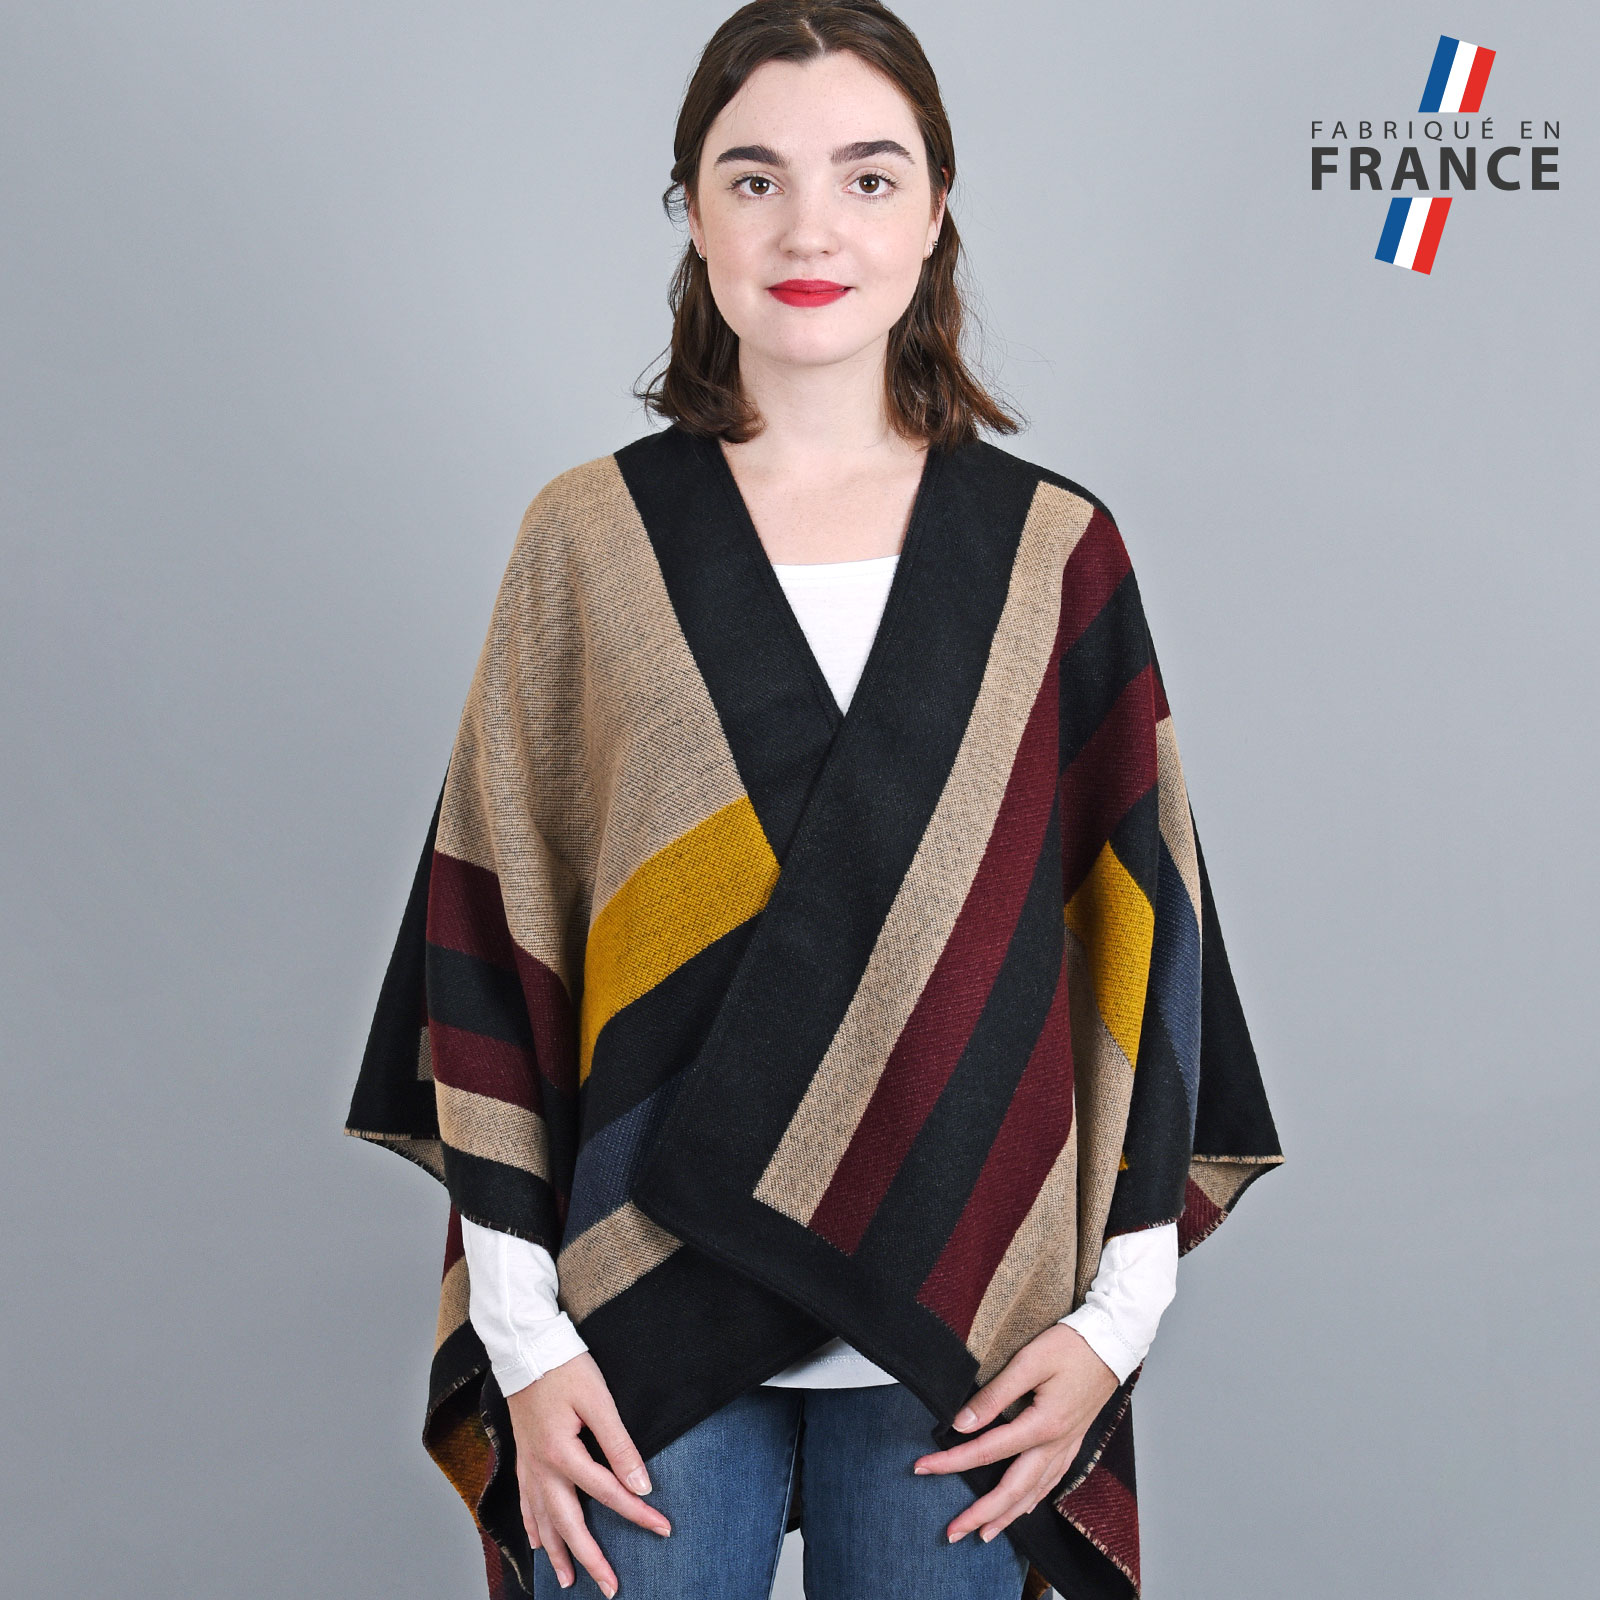 AT-03753-VF16-1-LB_FR-poncho-femme-hiver-bandes-multicolore